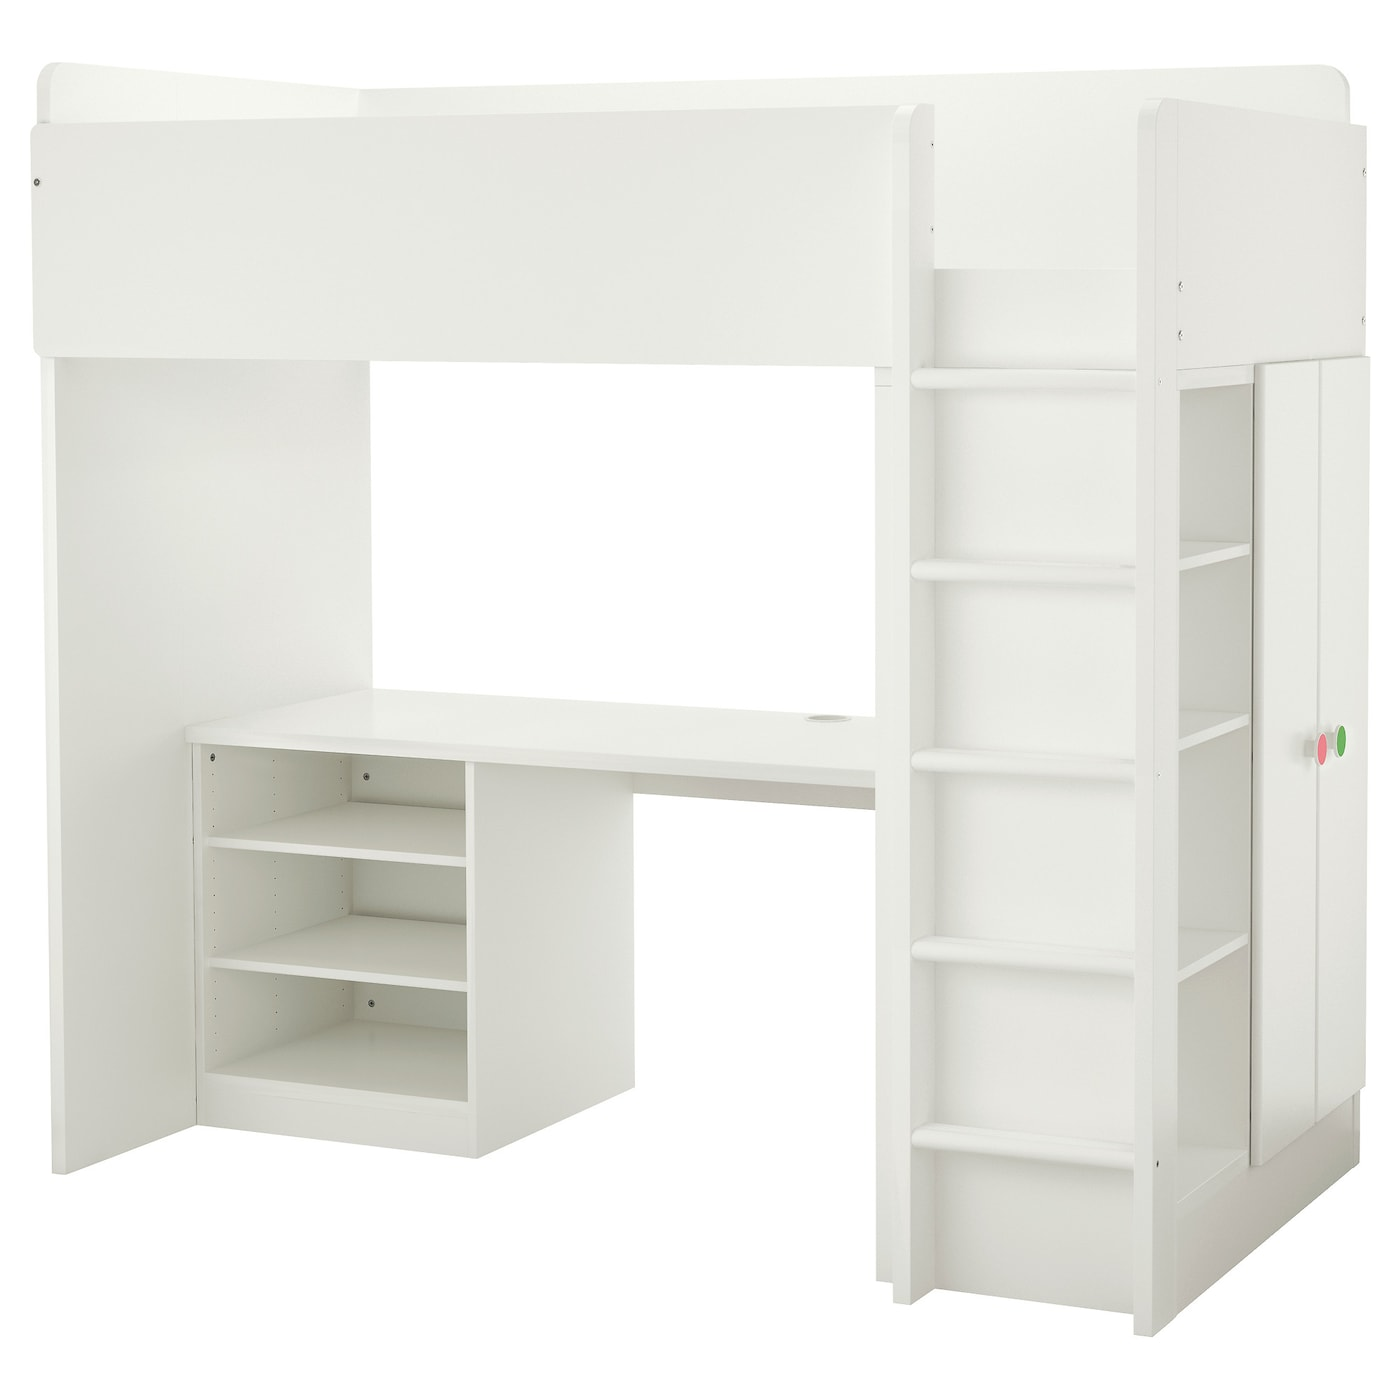 Stuva F 214 Lja Loft Bed Combo W 2 Shelves 2 Doors White